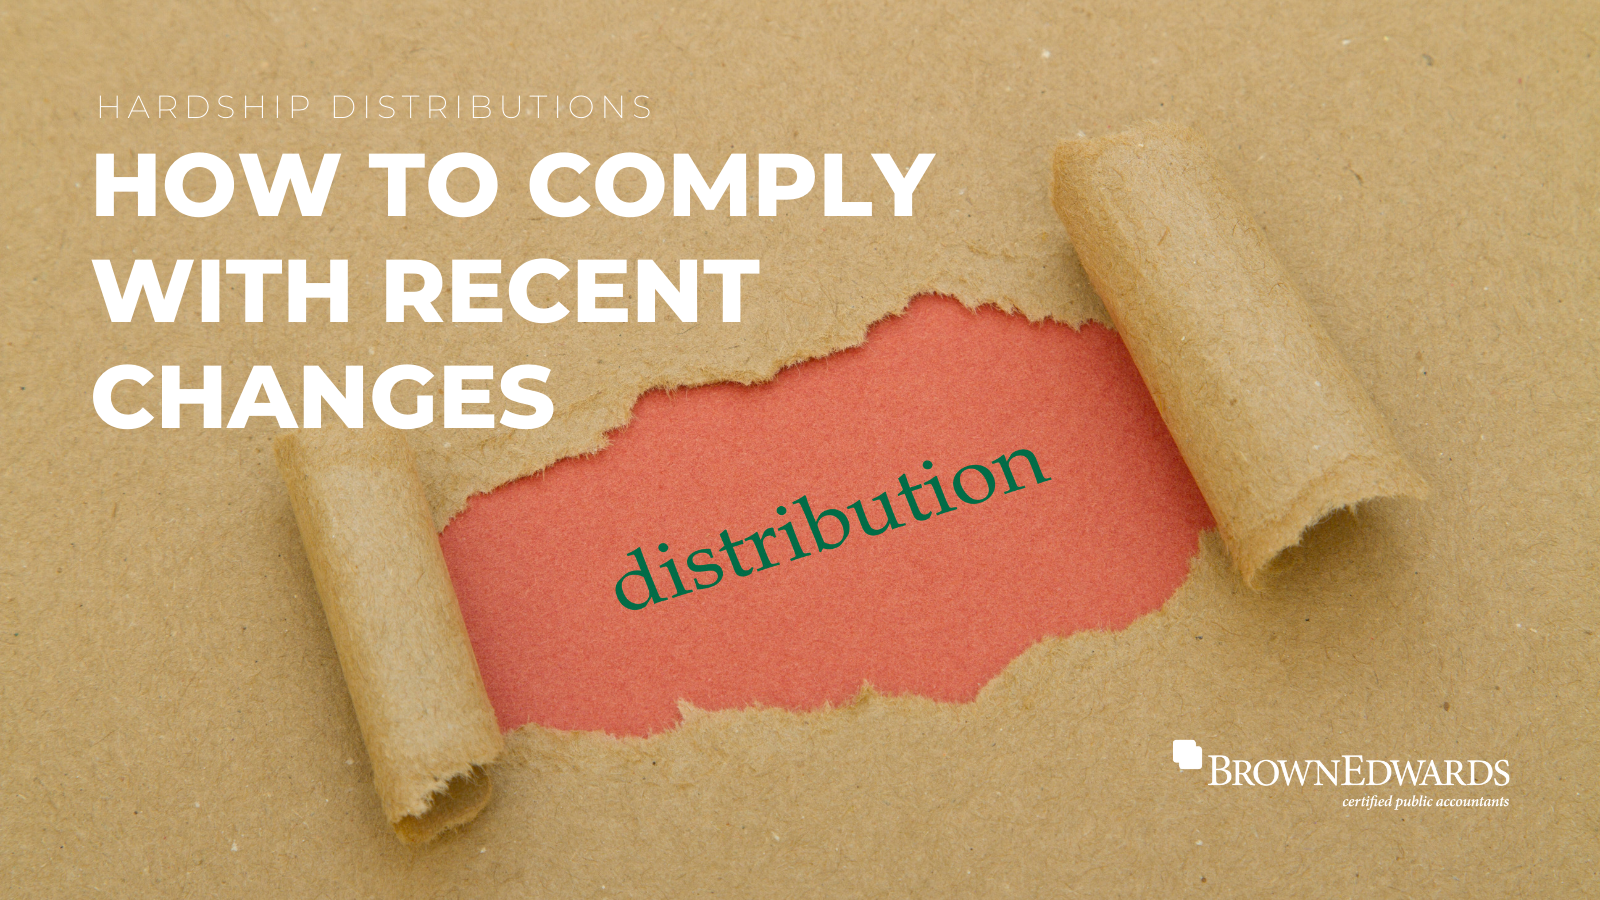 Hardship Distributions: Complying with Recent Changes